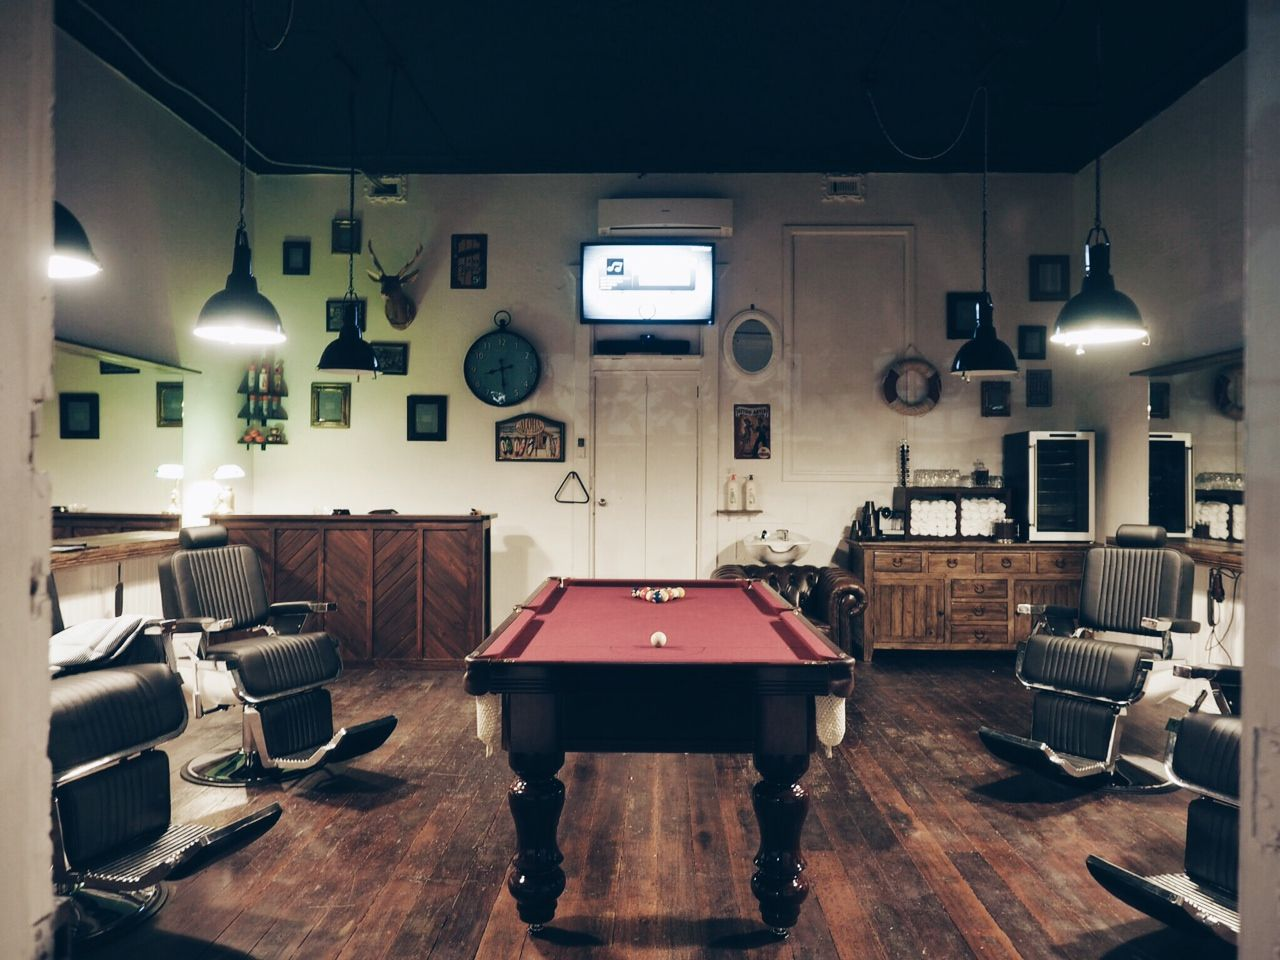 Man Cave Stores Perth : Westons barbershop in perth western australia places i love